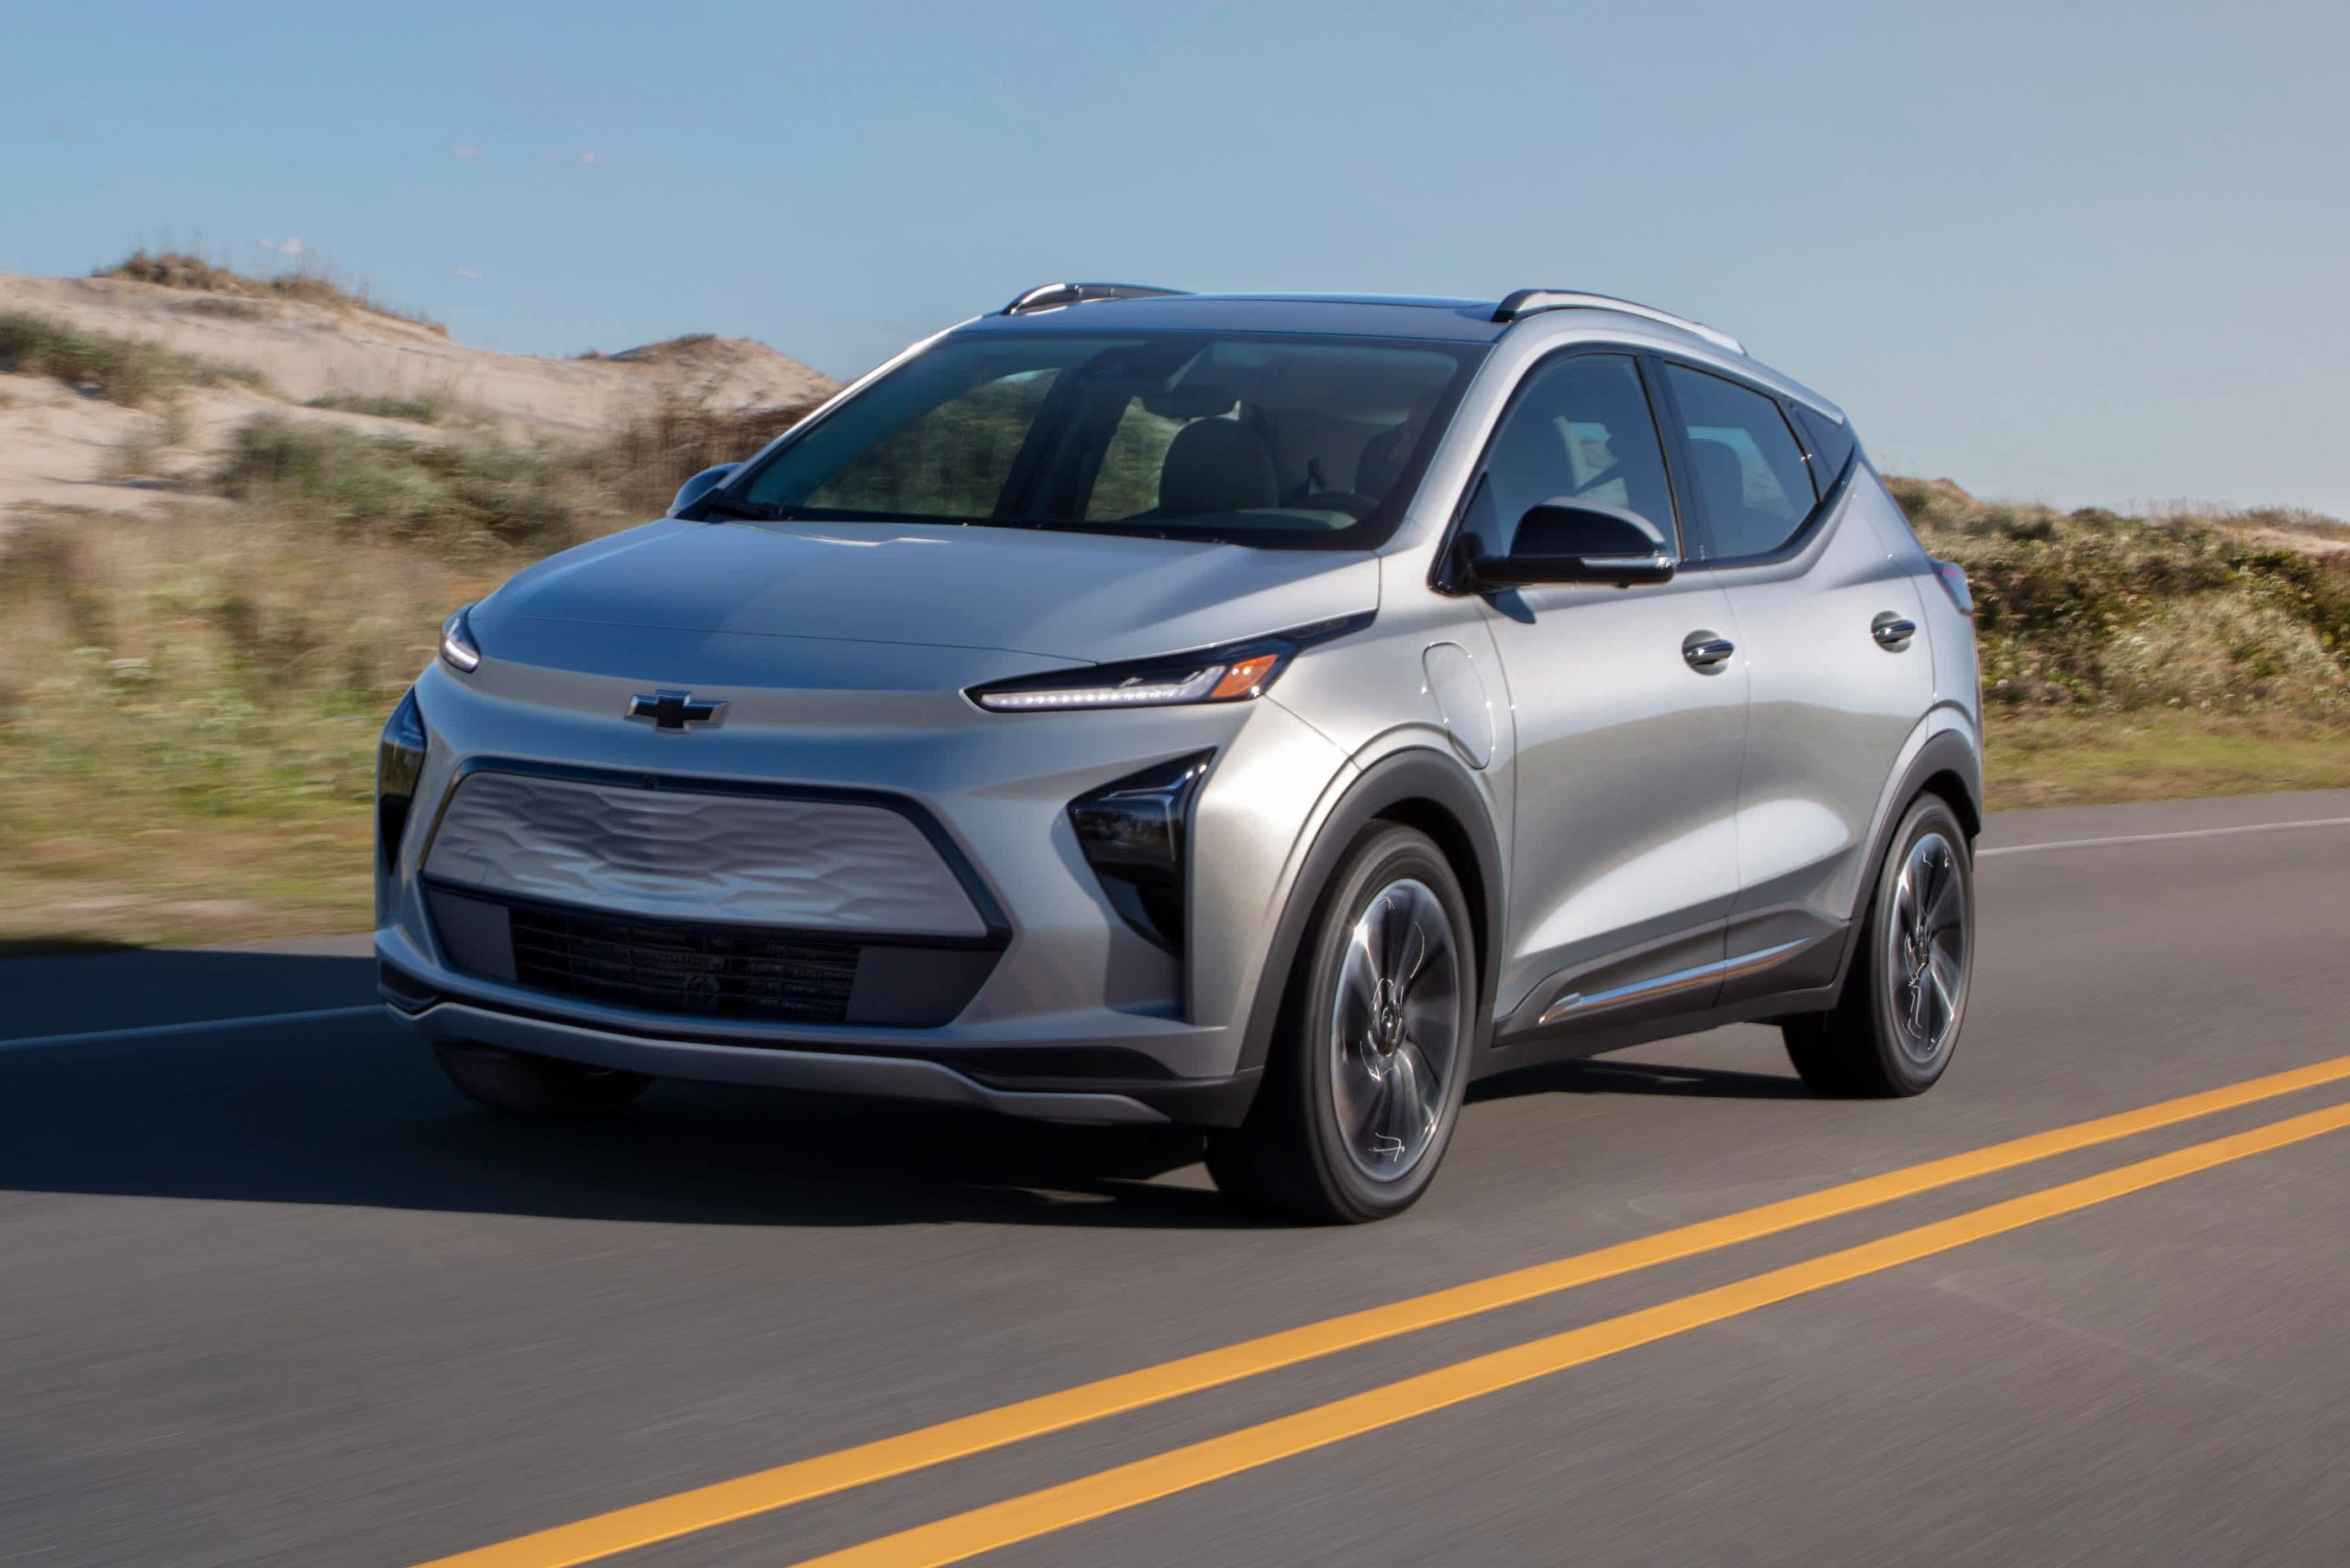 gm-unveils-all-electric-chevy-bolt-euv-and-redesigned-less-expensive-bolt-ev